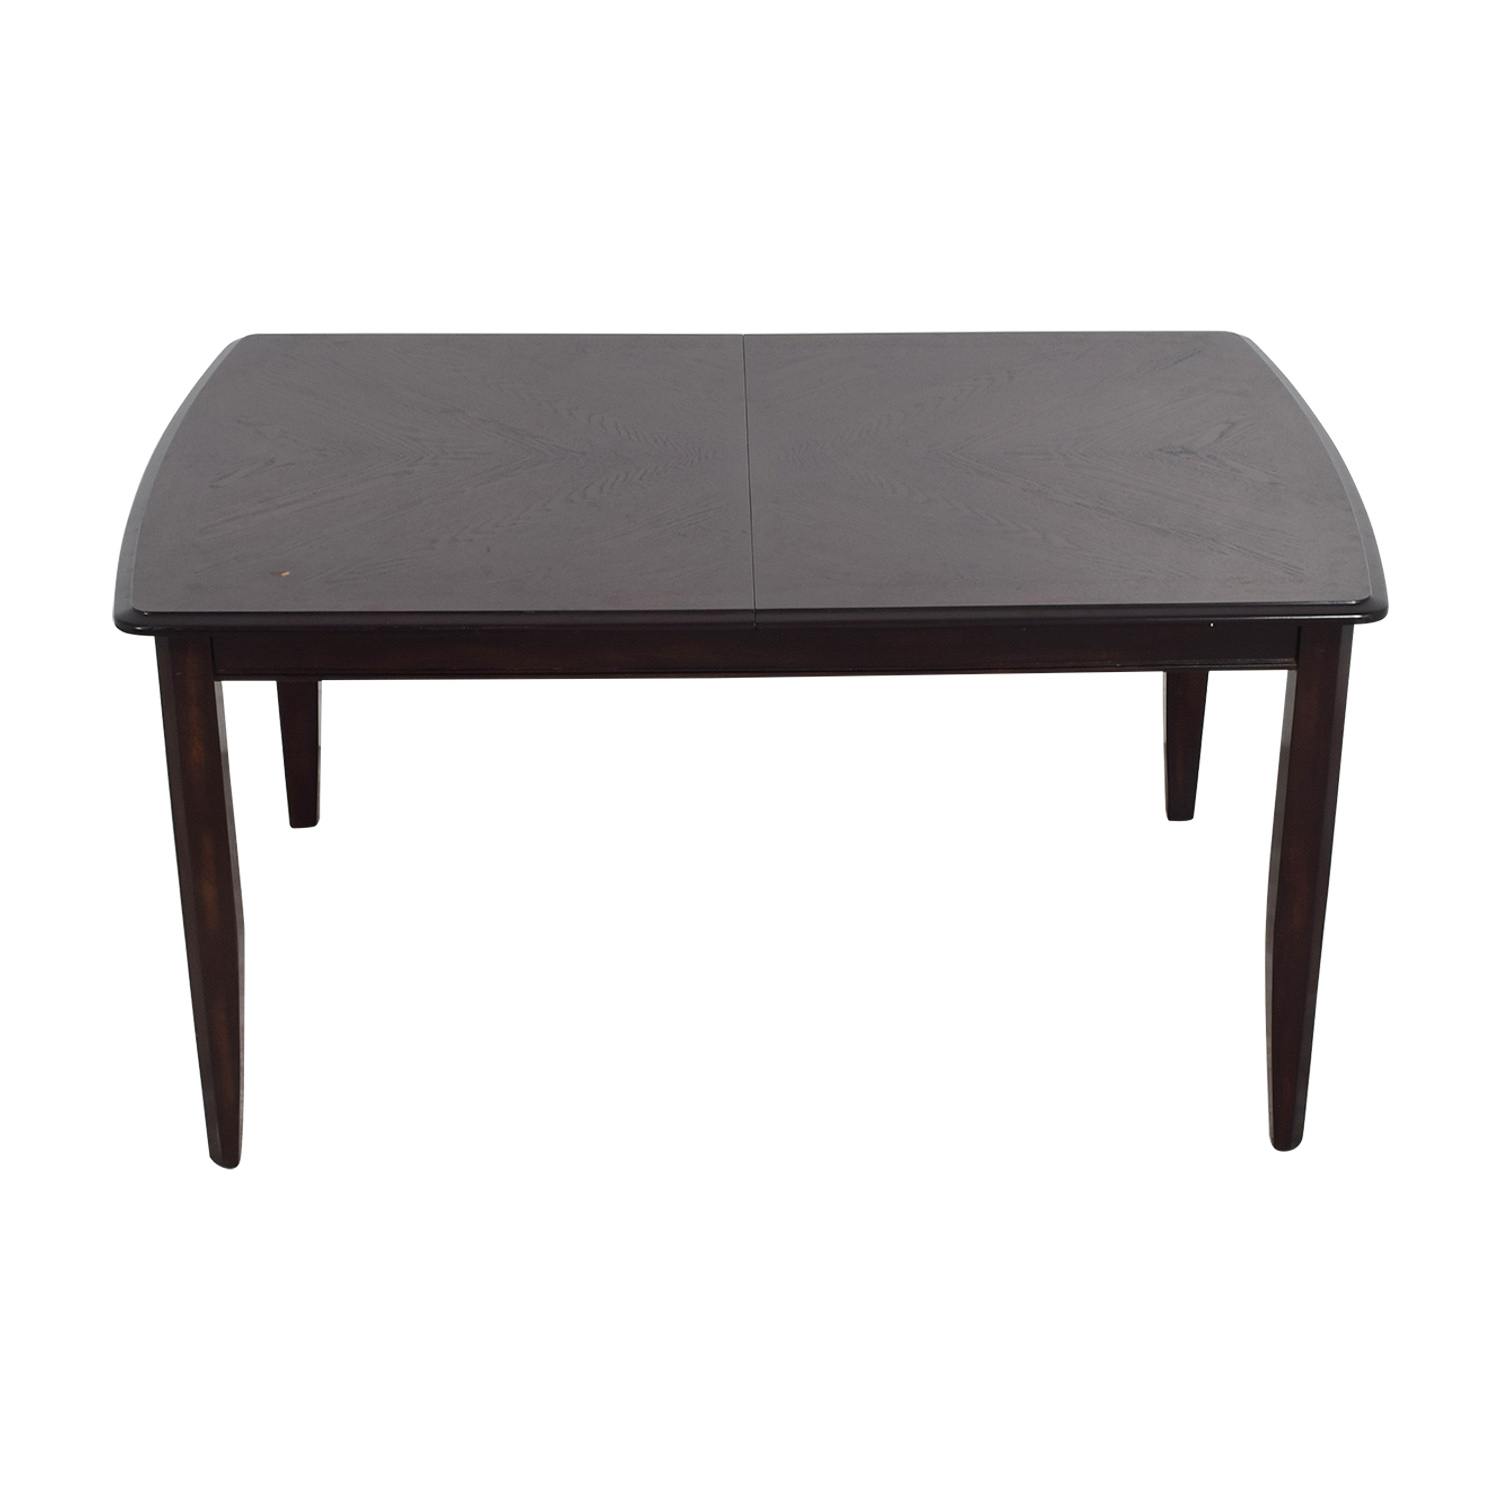 buy Raymour & Flanigan Raymour & Flanigan Wood Dining Table online